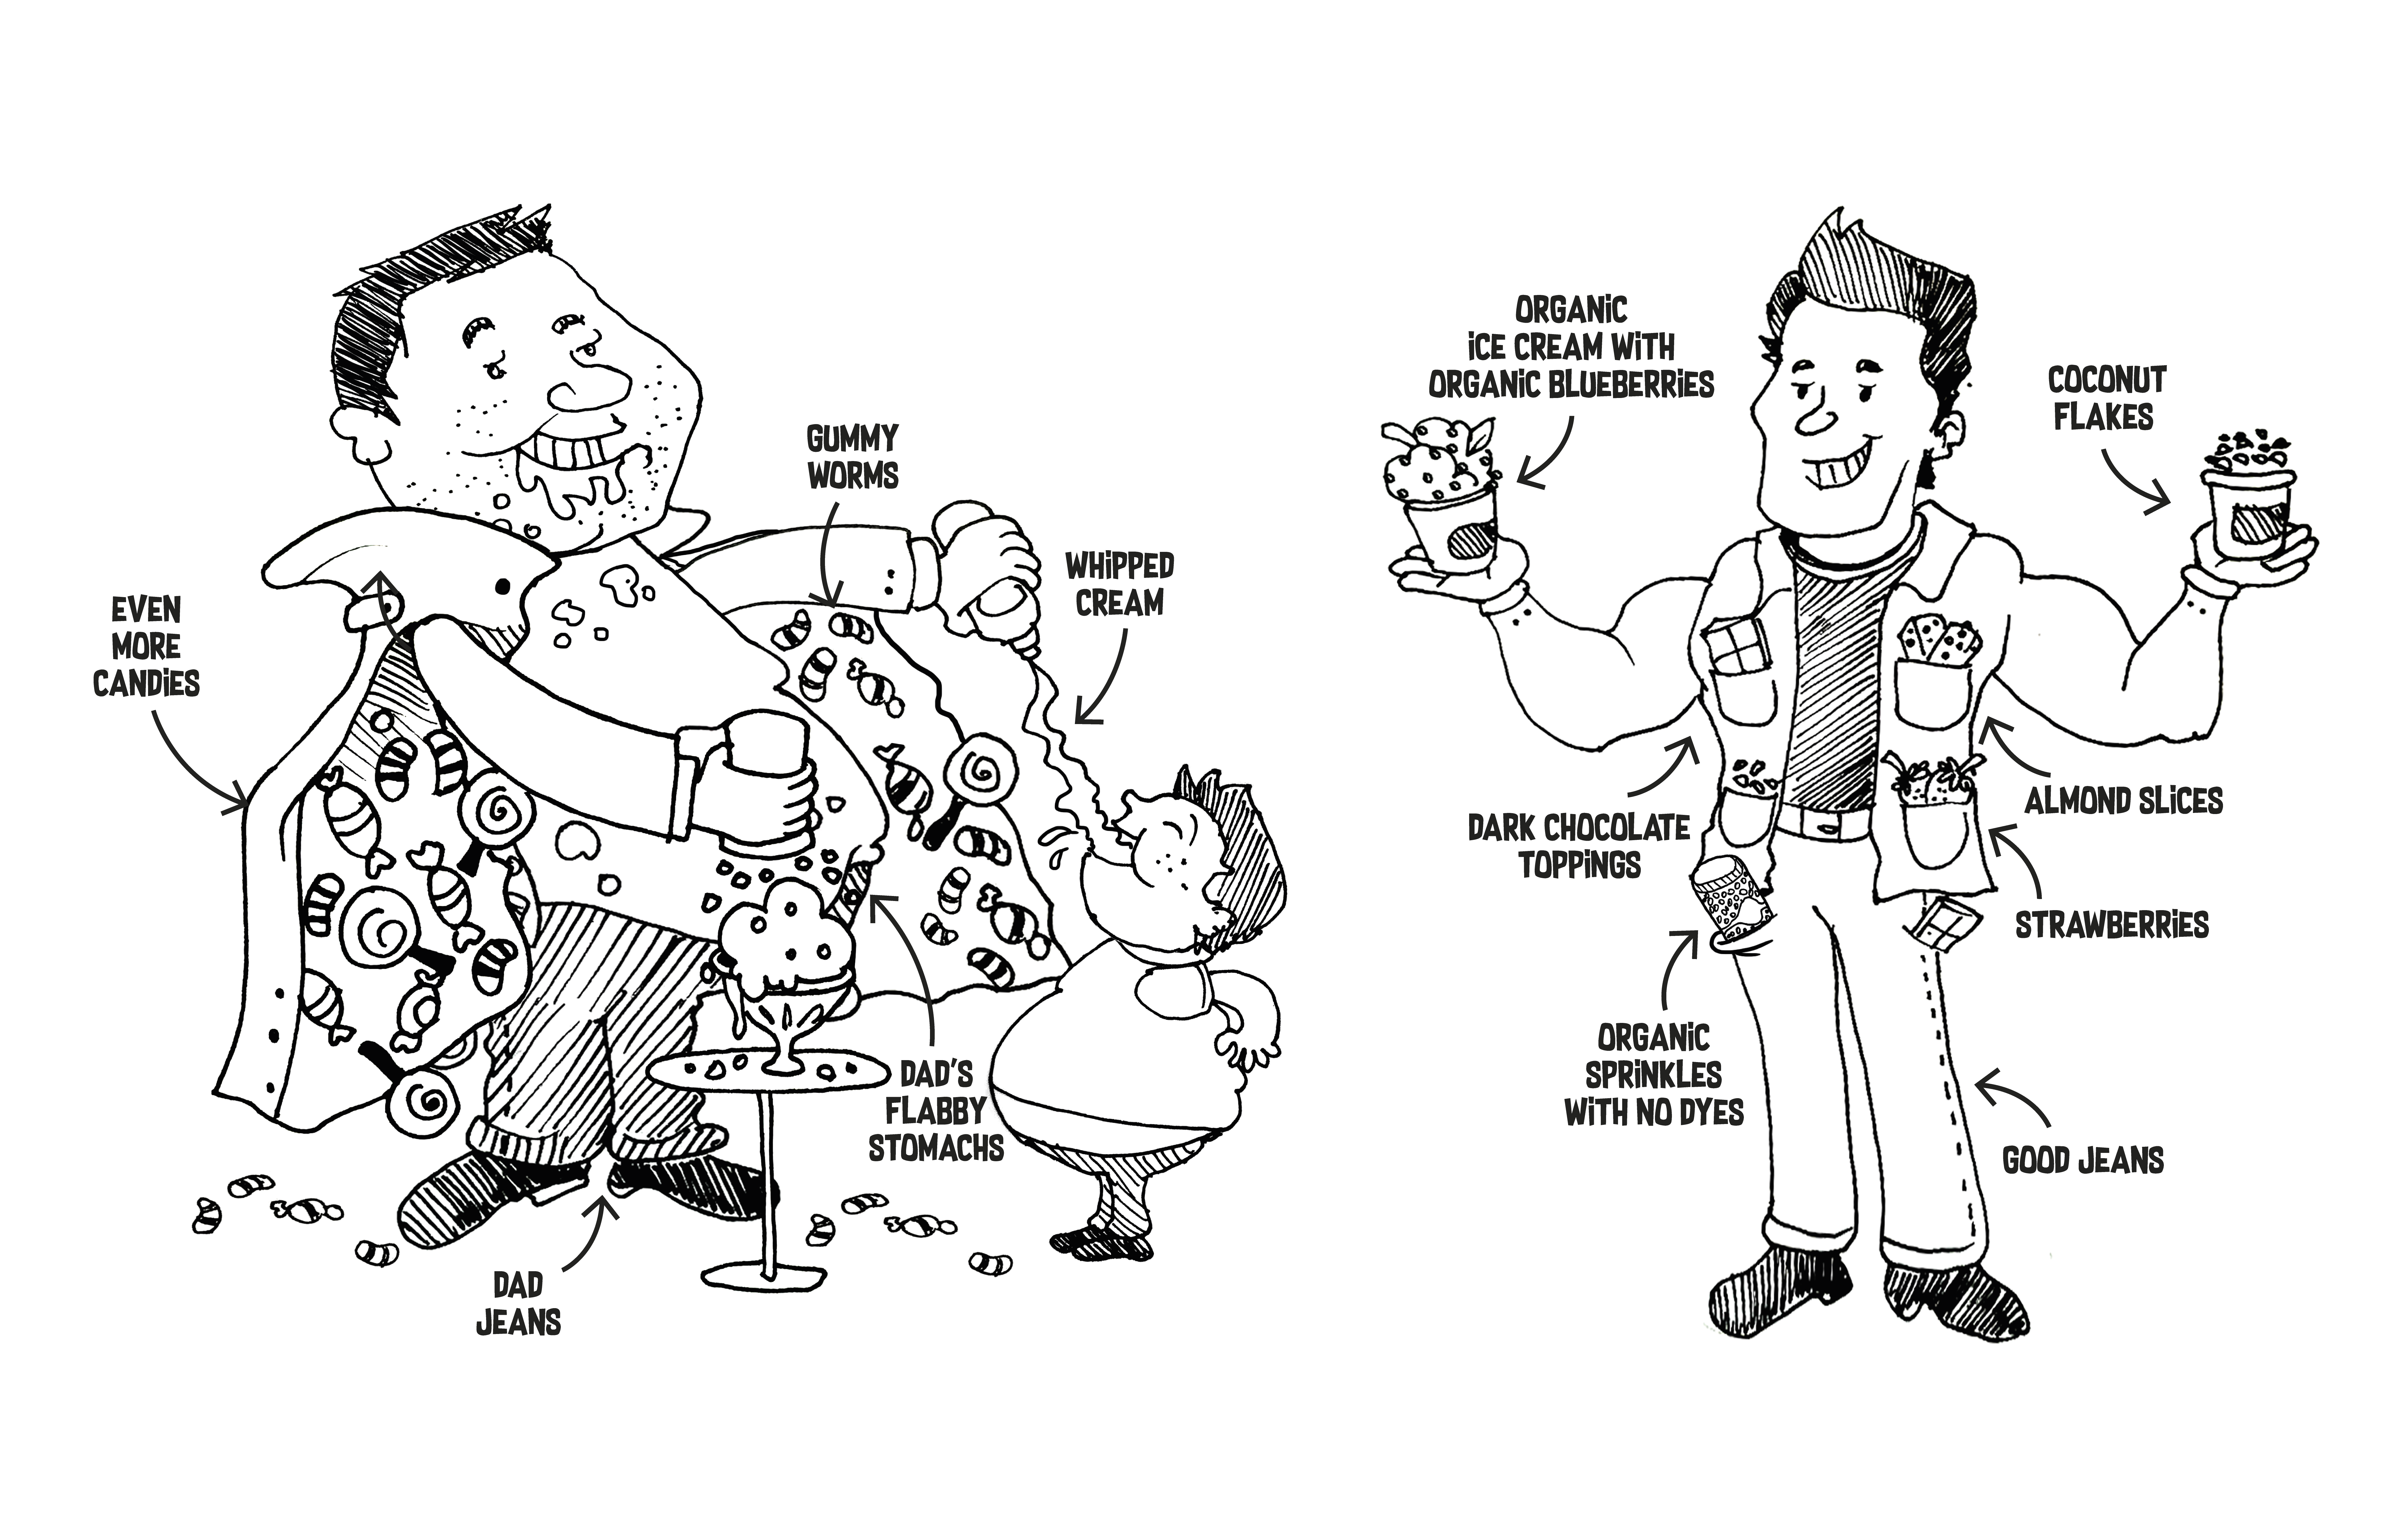 doodles for funny book on sugar and parenting